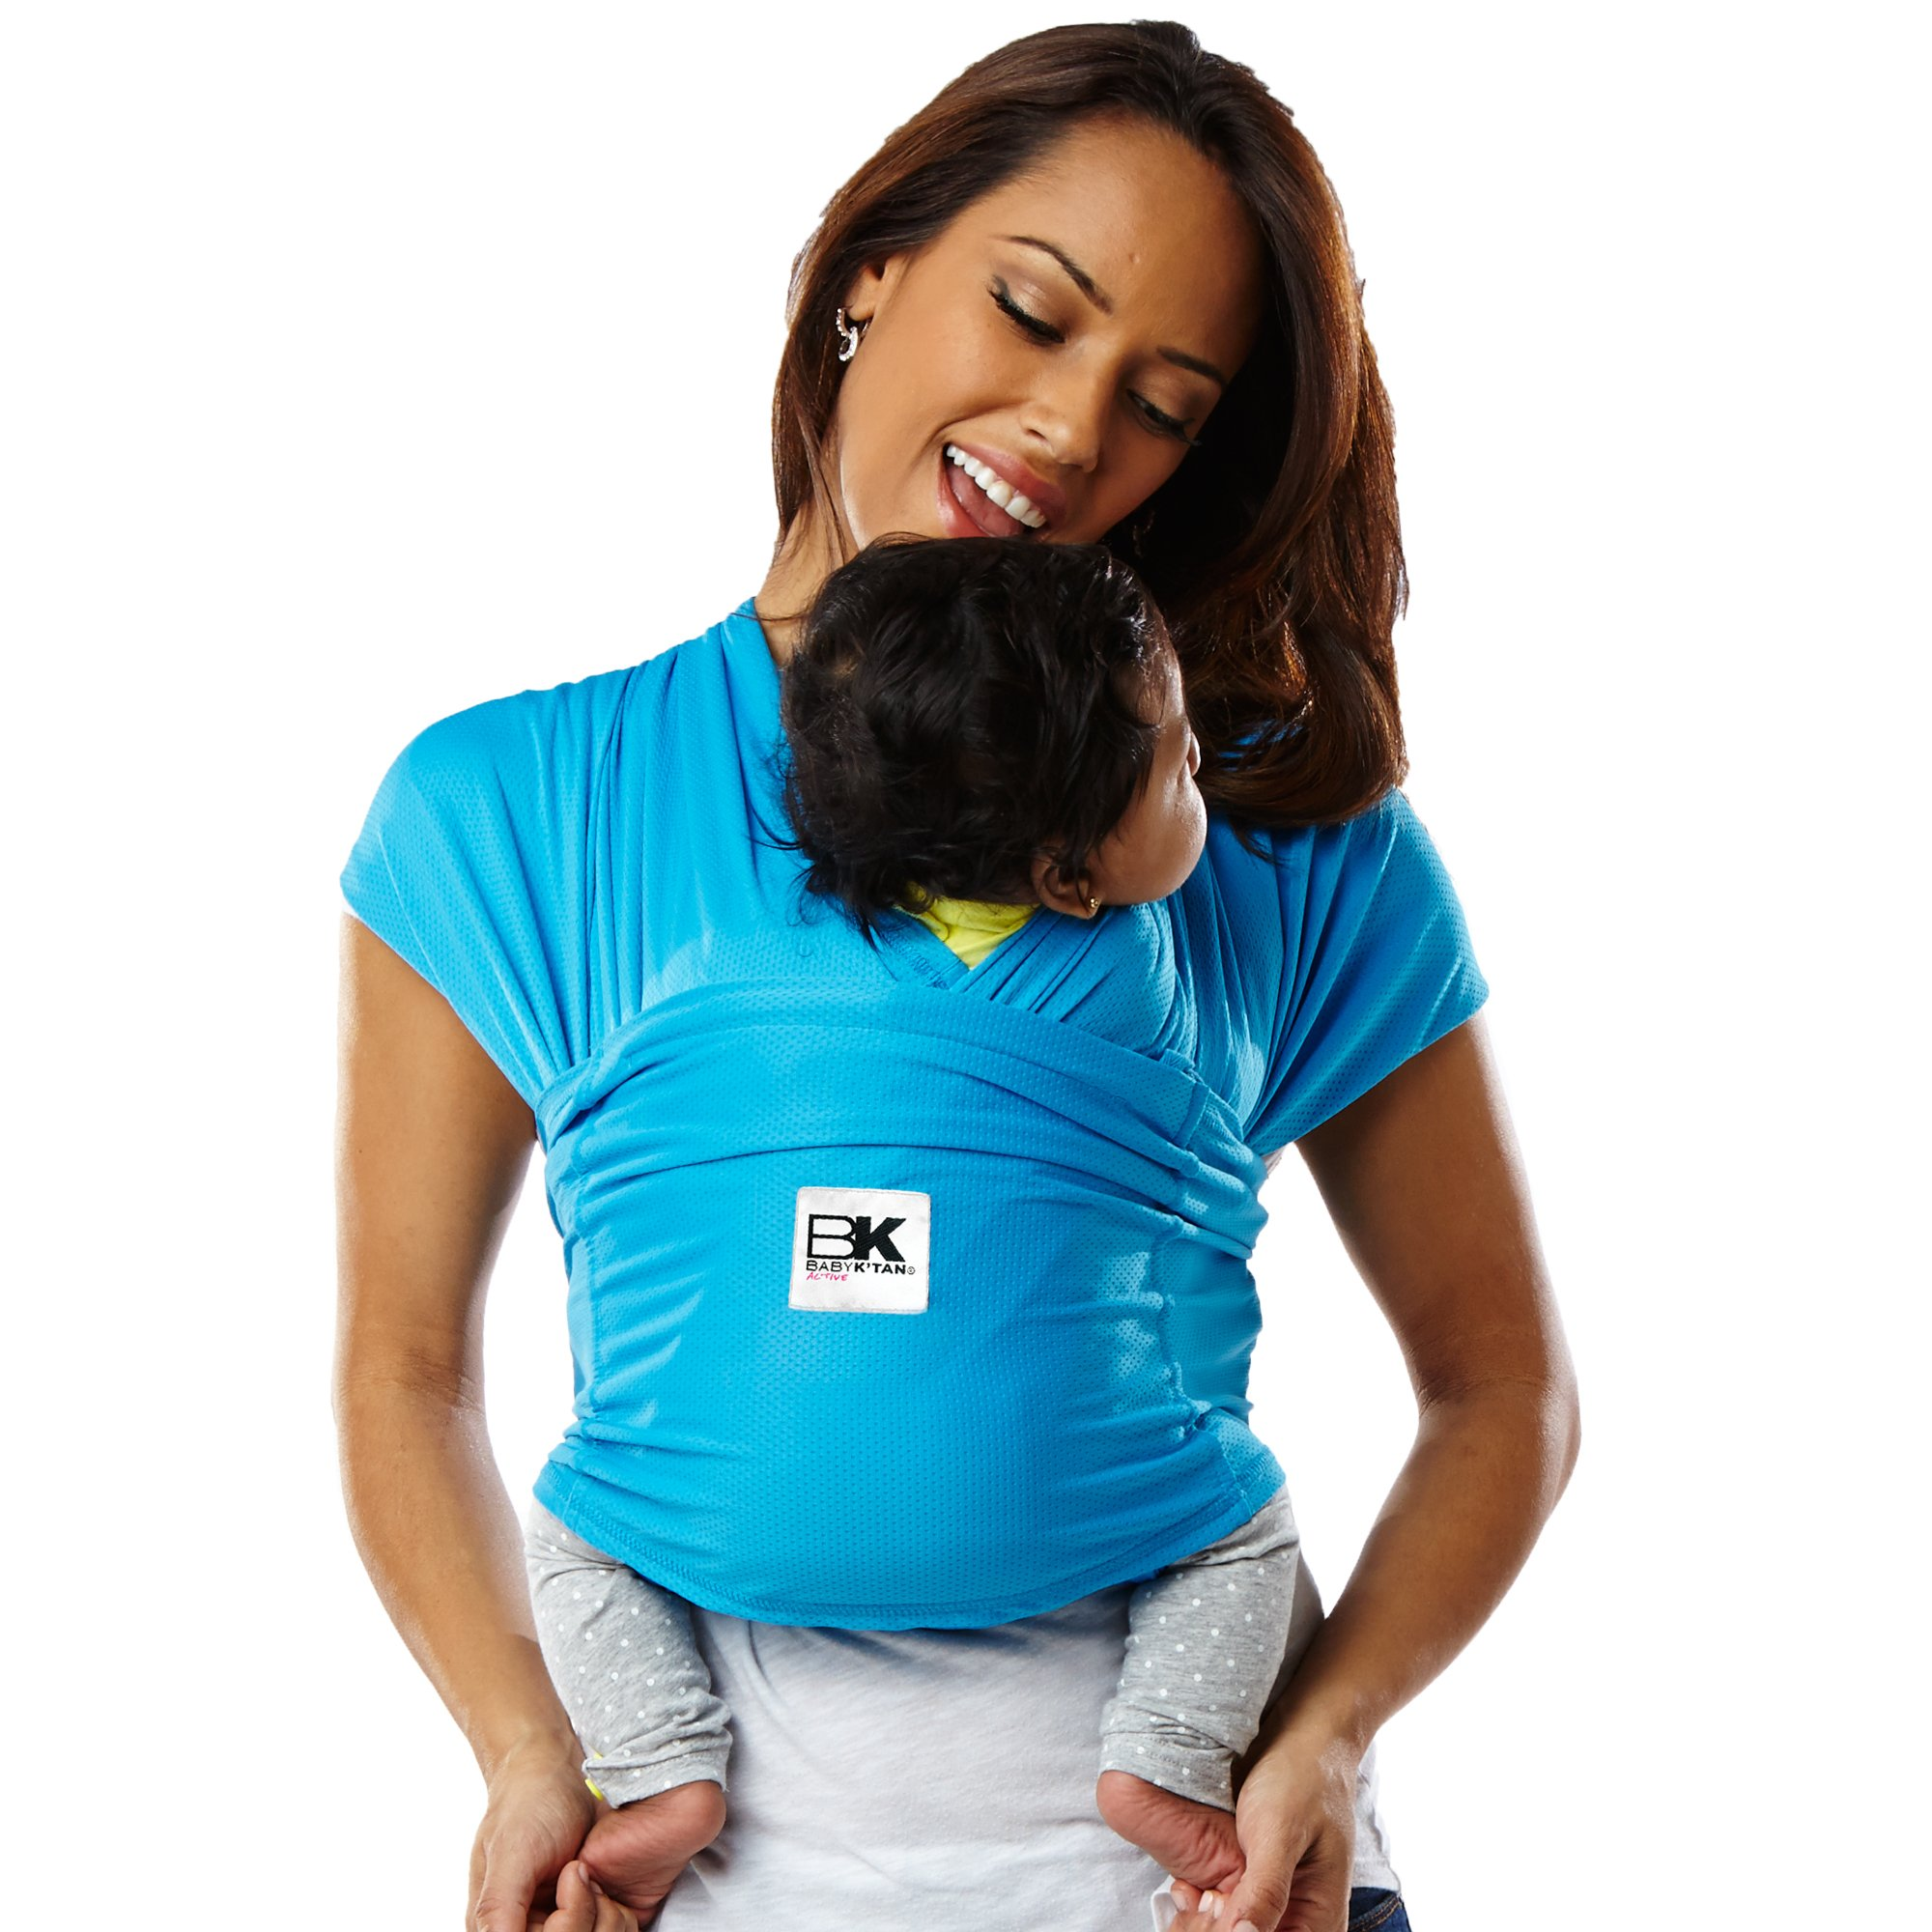 Amazon.com : Baby K'tan BREEZE Baby Carrier, Teal Cotton ...